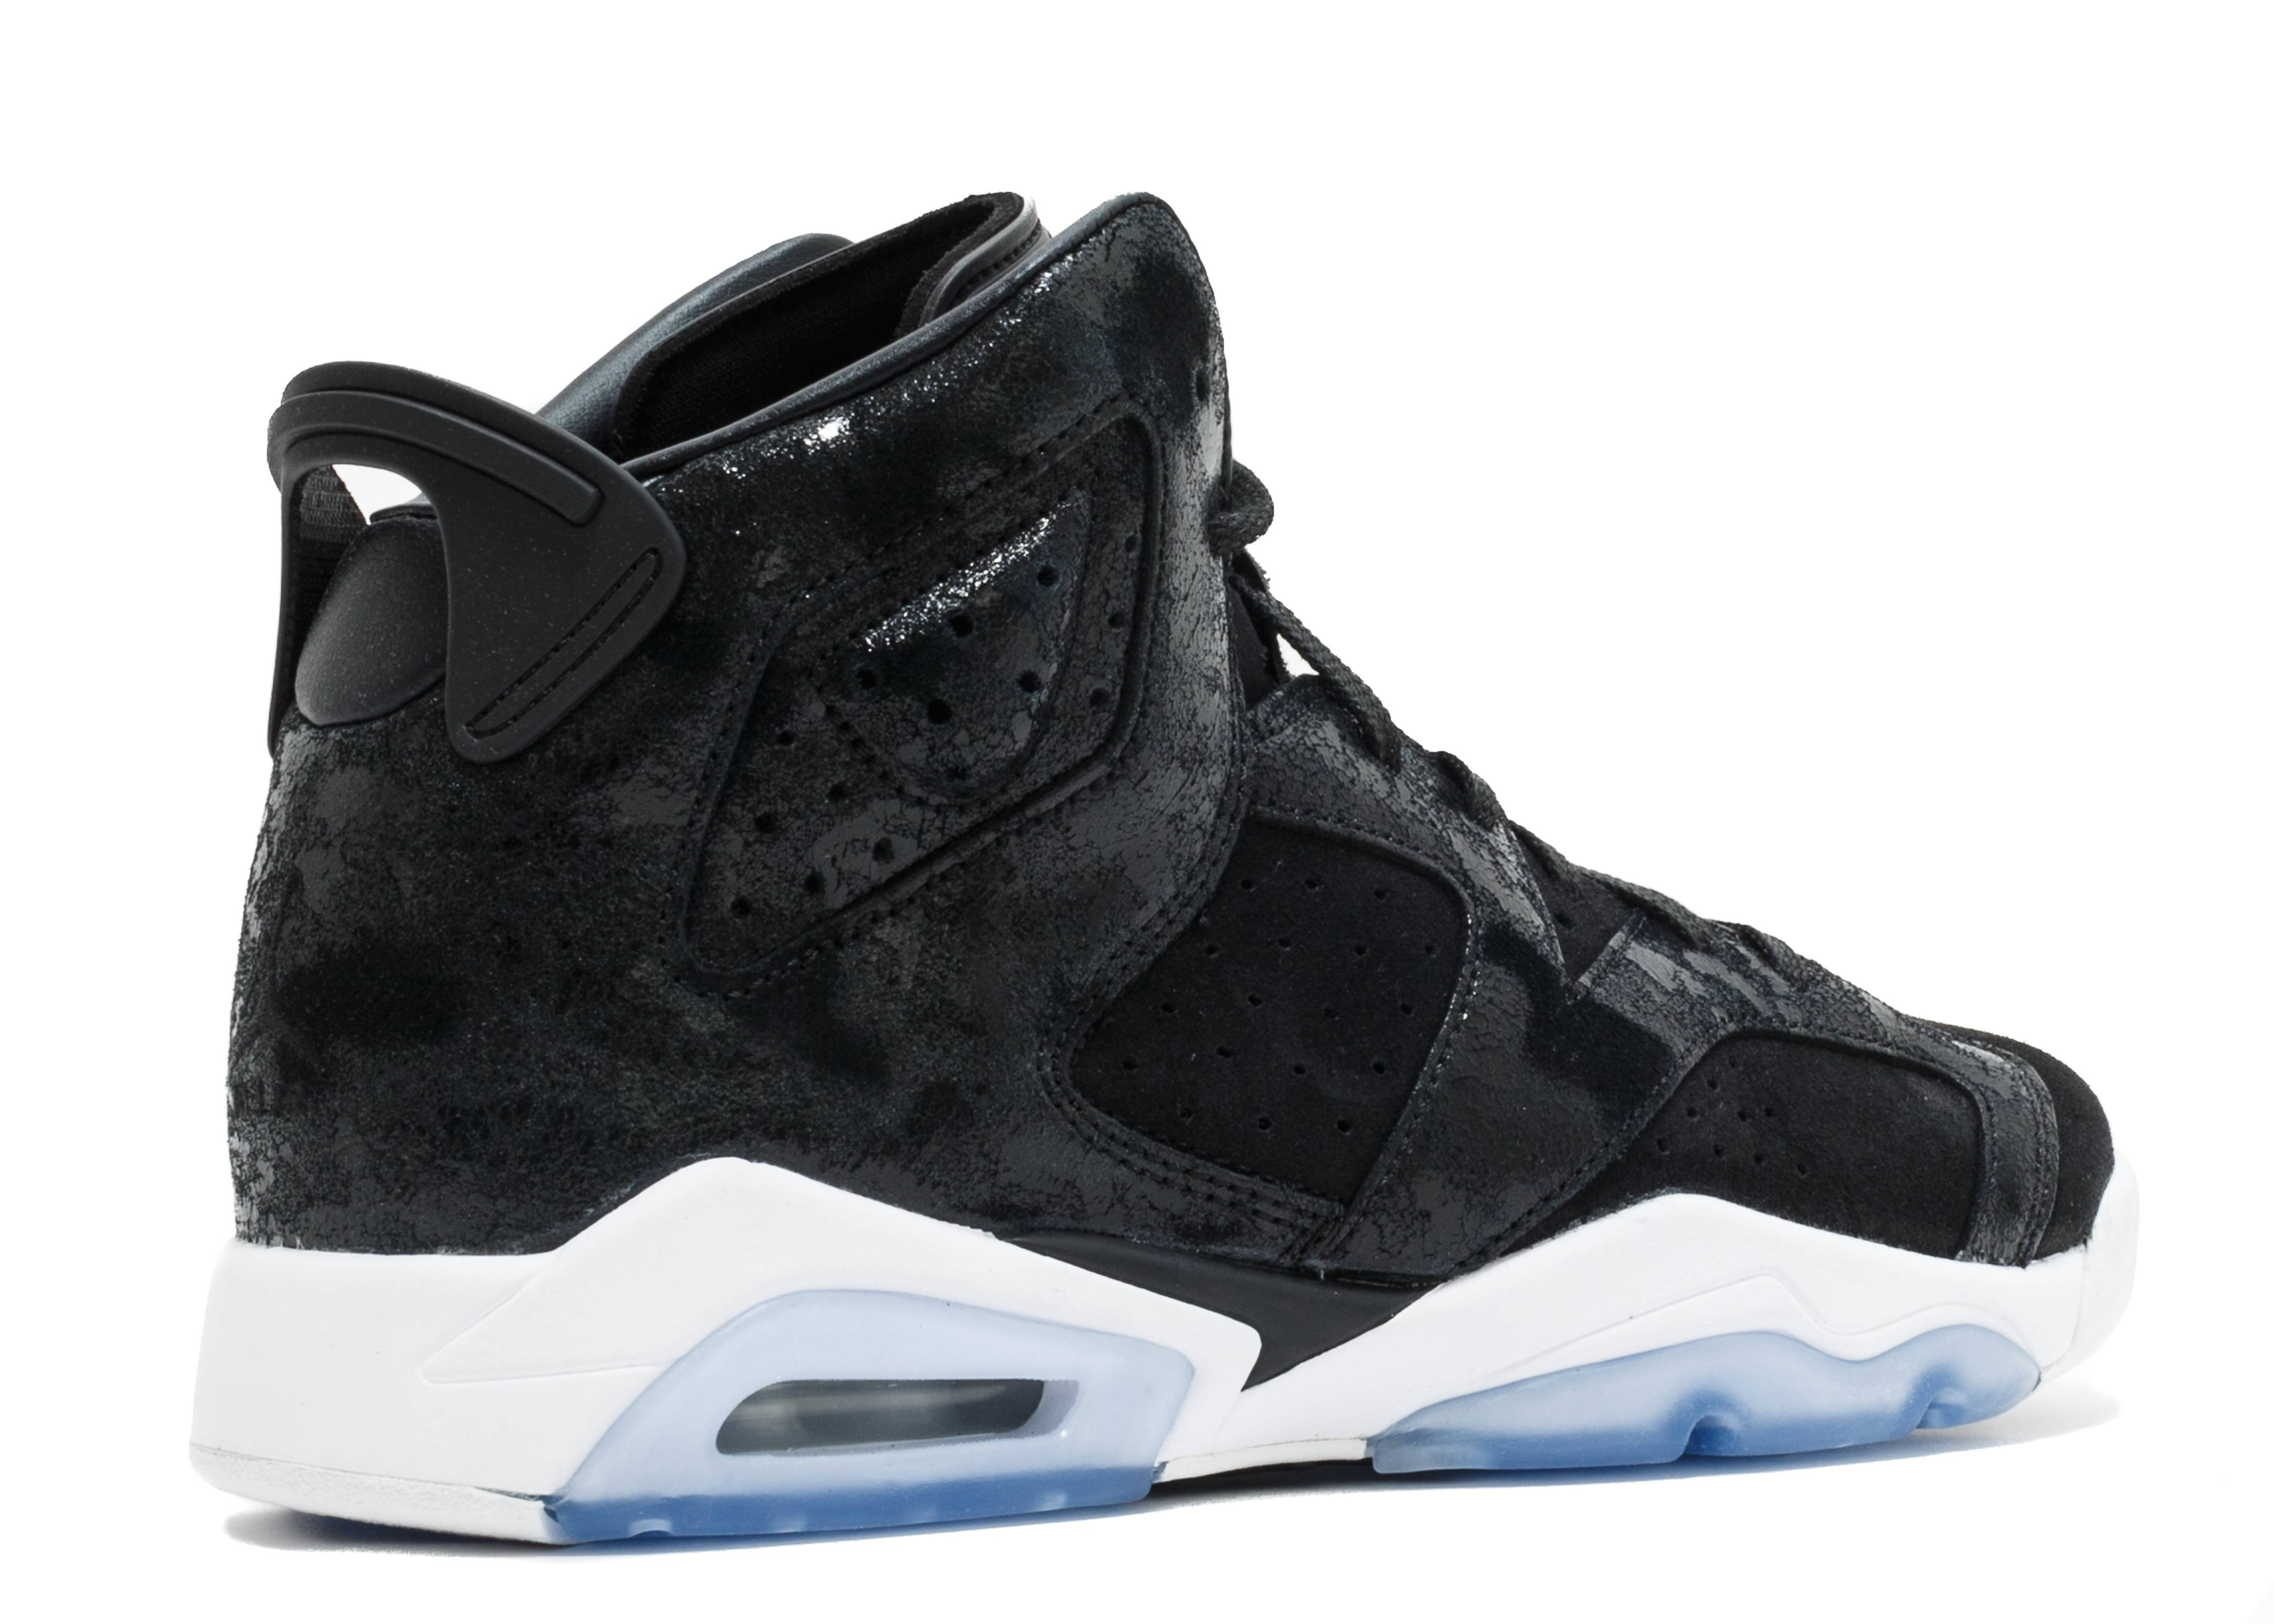 What If Air Jordan Shoes With Only Nike Written